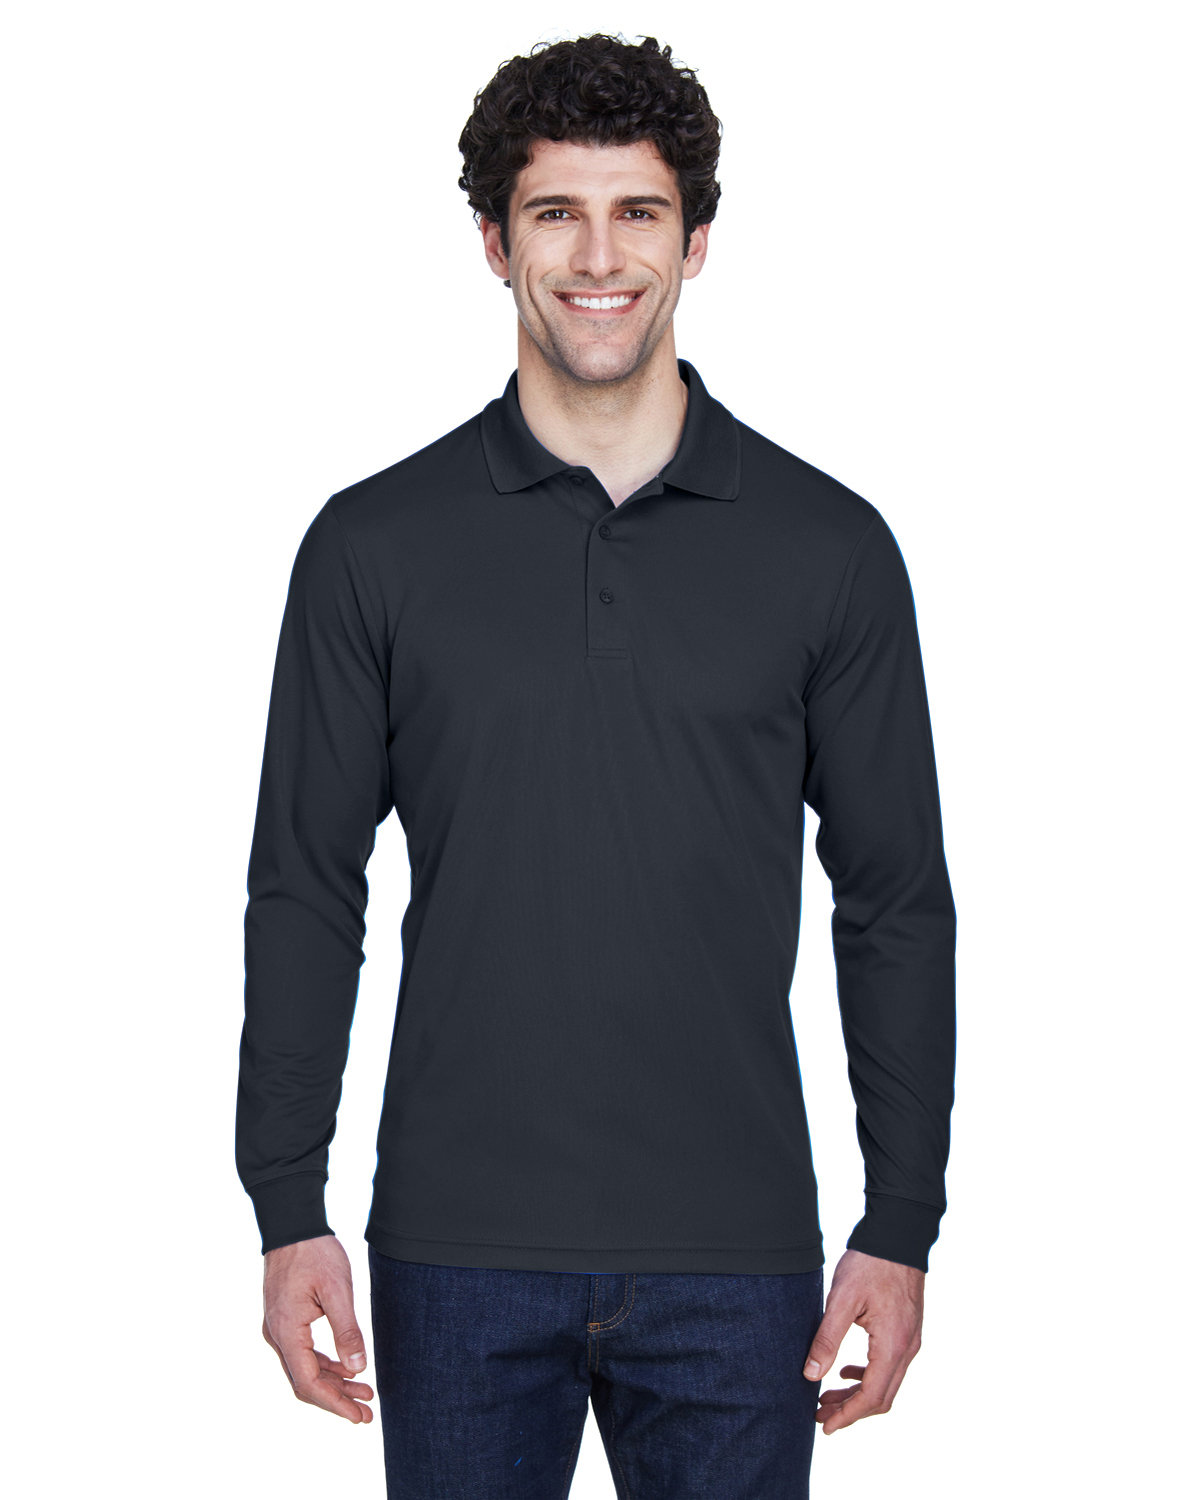 Core 365 Men's Tall Pinnacle Performance Long-Sleeve Piqué Polo CARBON